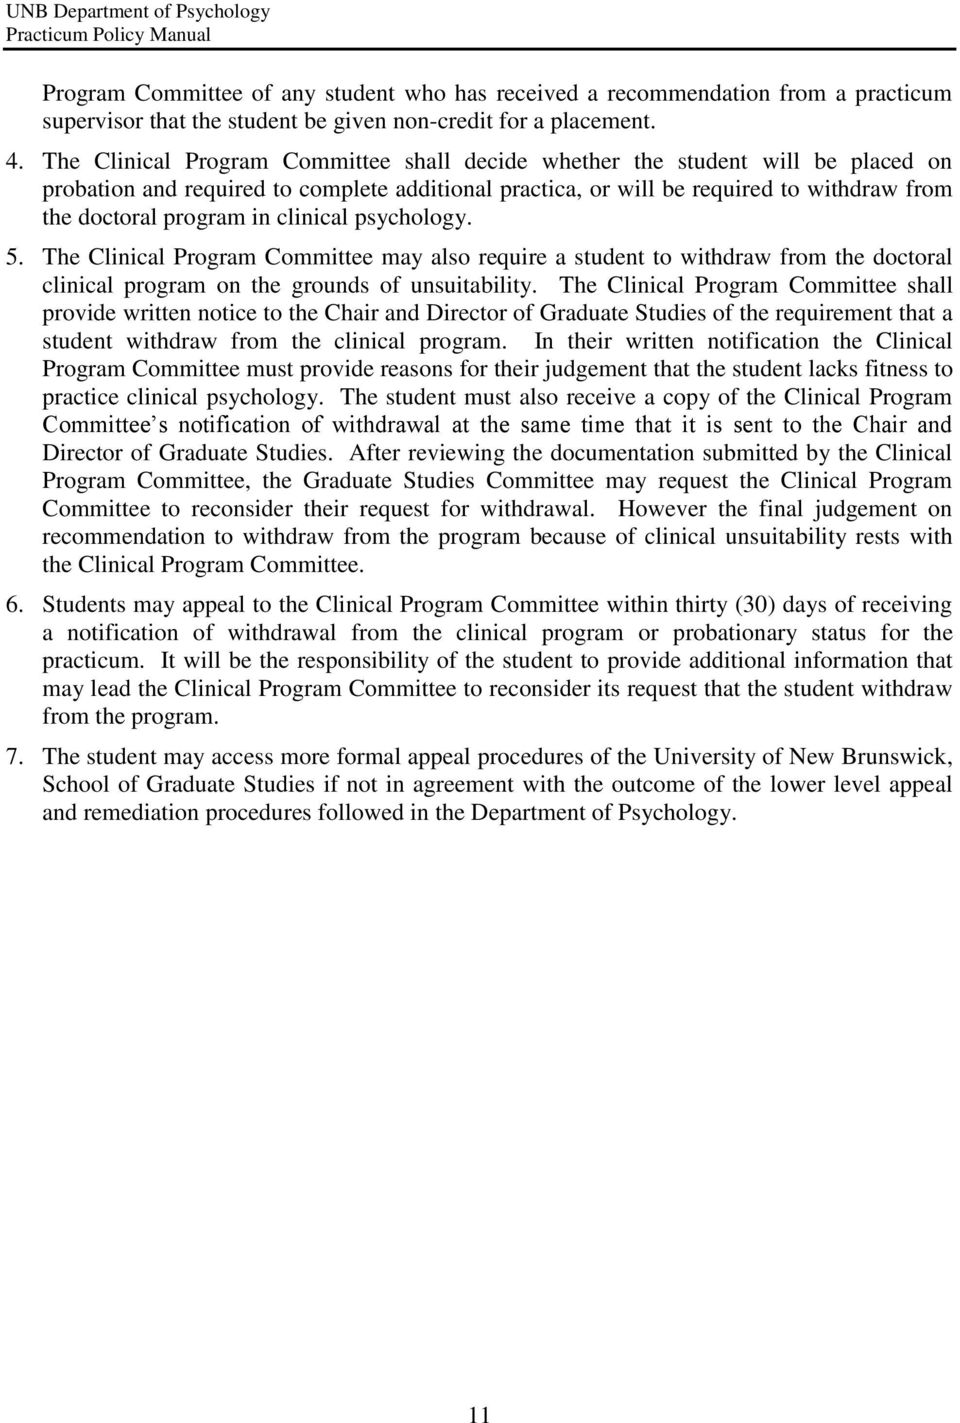 clinical psychology. 5. The Clinical Program Committee may also require a student to withdraw from the doctoral clinical program on the grounds of unsuitability.